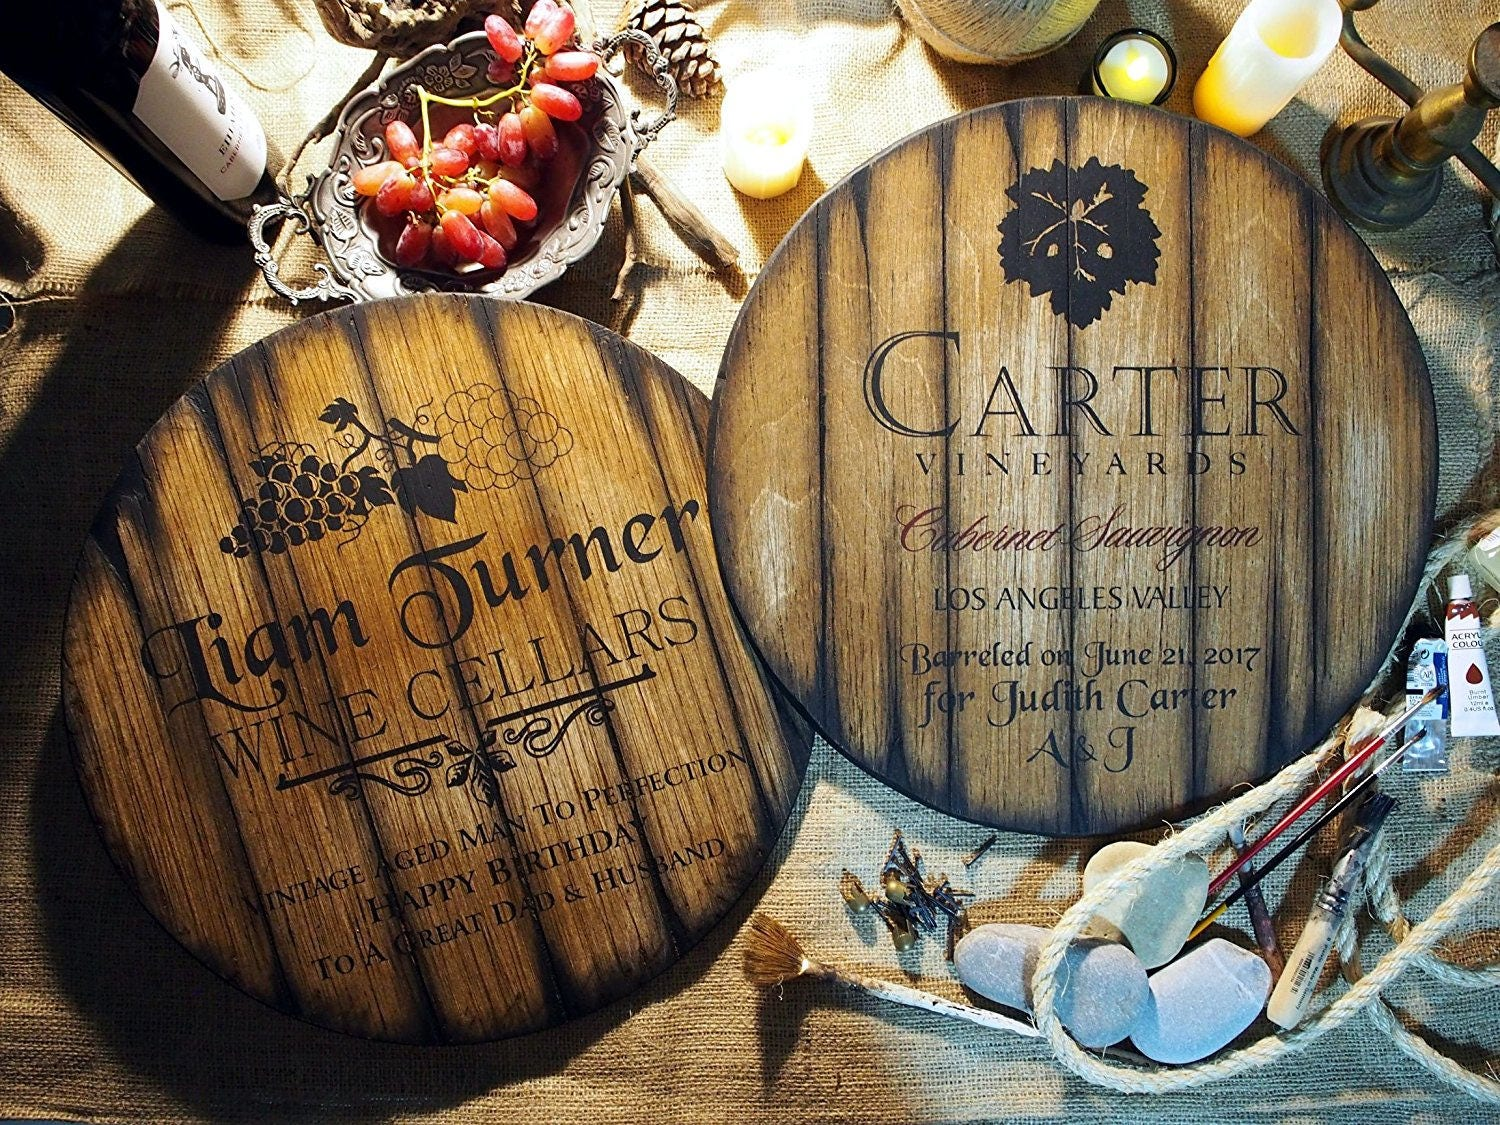 Personalized Decor Sign Inspired By Wine Barrel Tops Rustic Home Decor Custom Gift Wine Wall Art Hand Painted Theme On Worn Out Wood